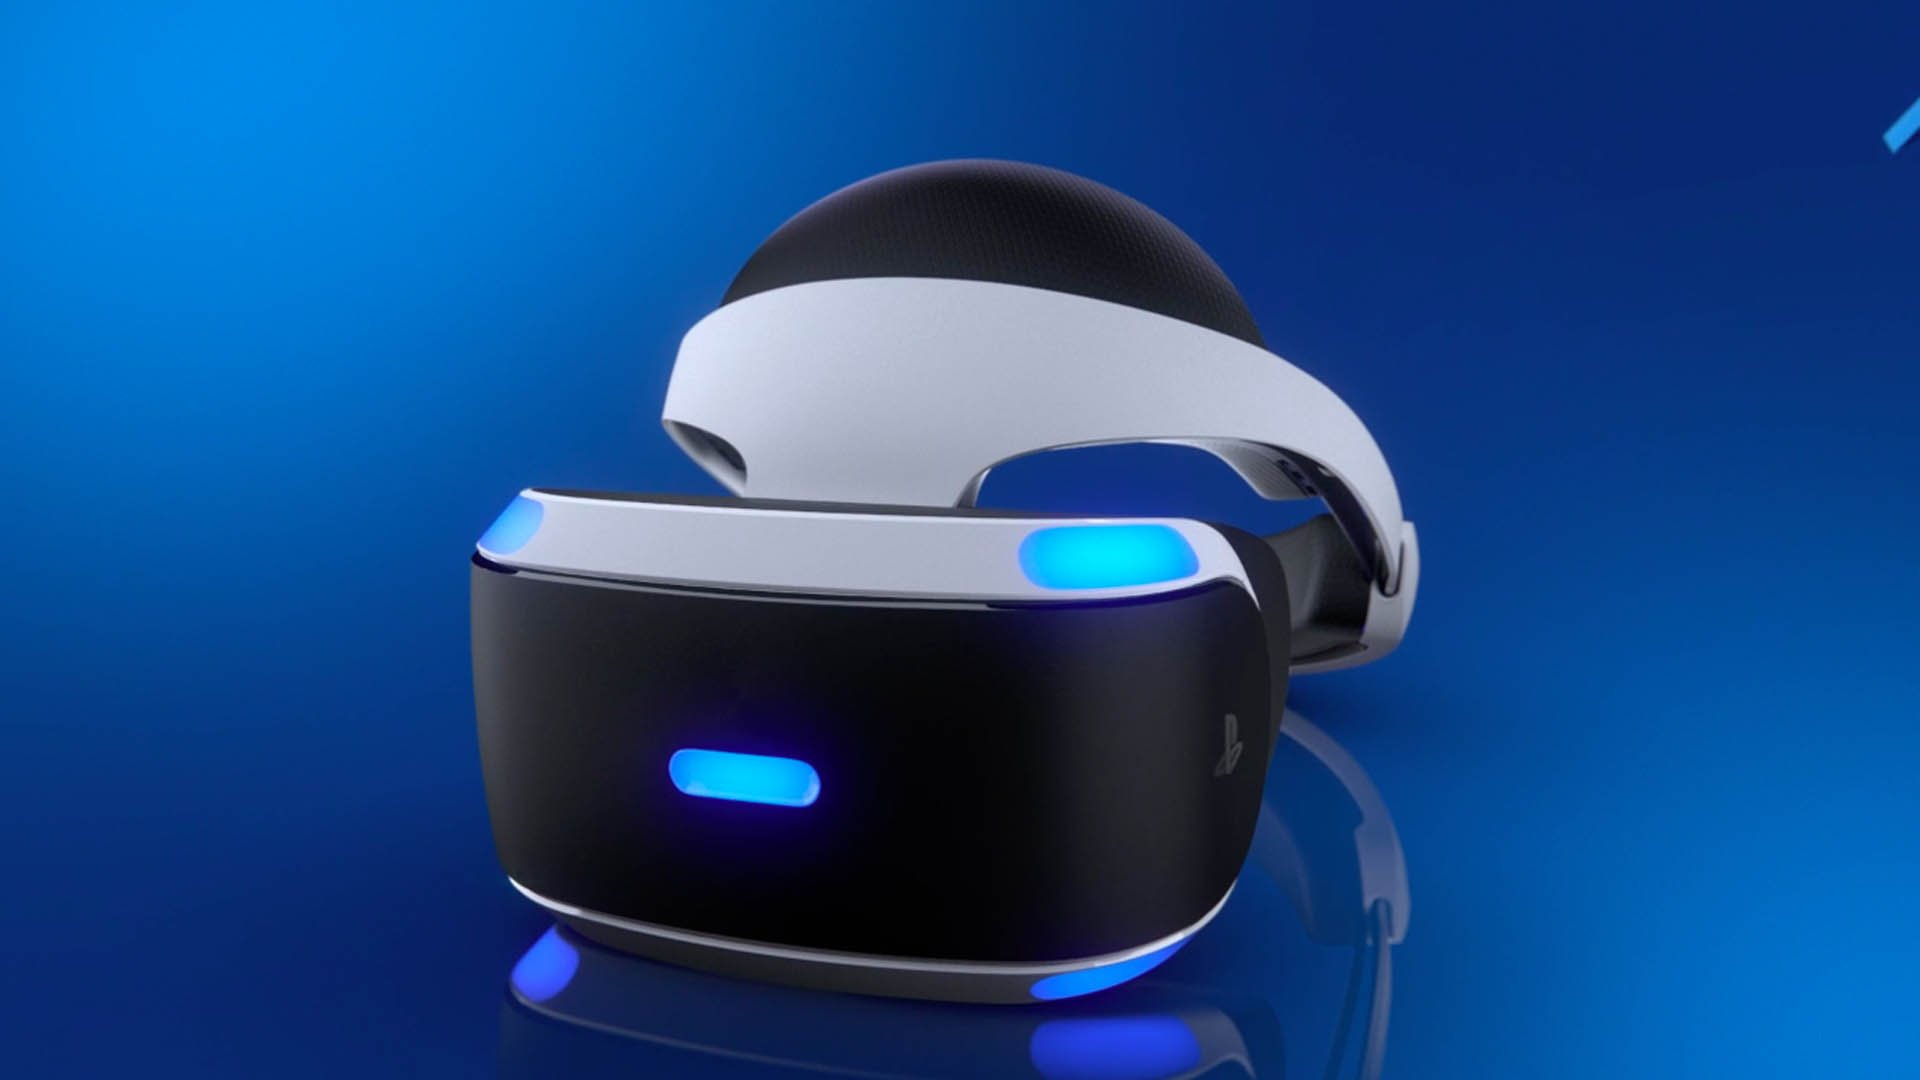 PlayStation VR 2 (PSVR 2) Specs and Features